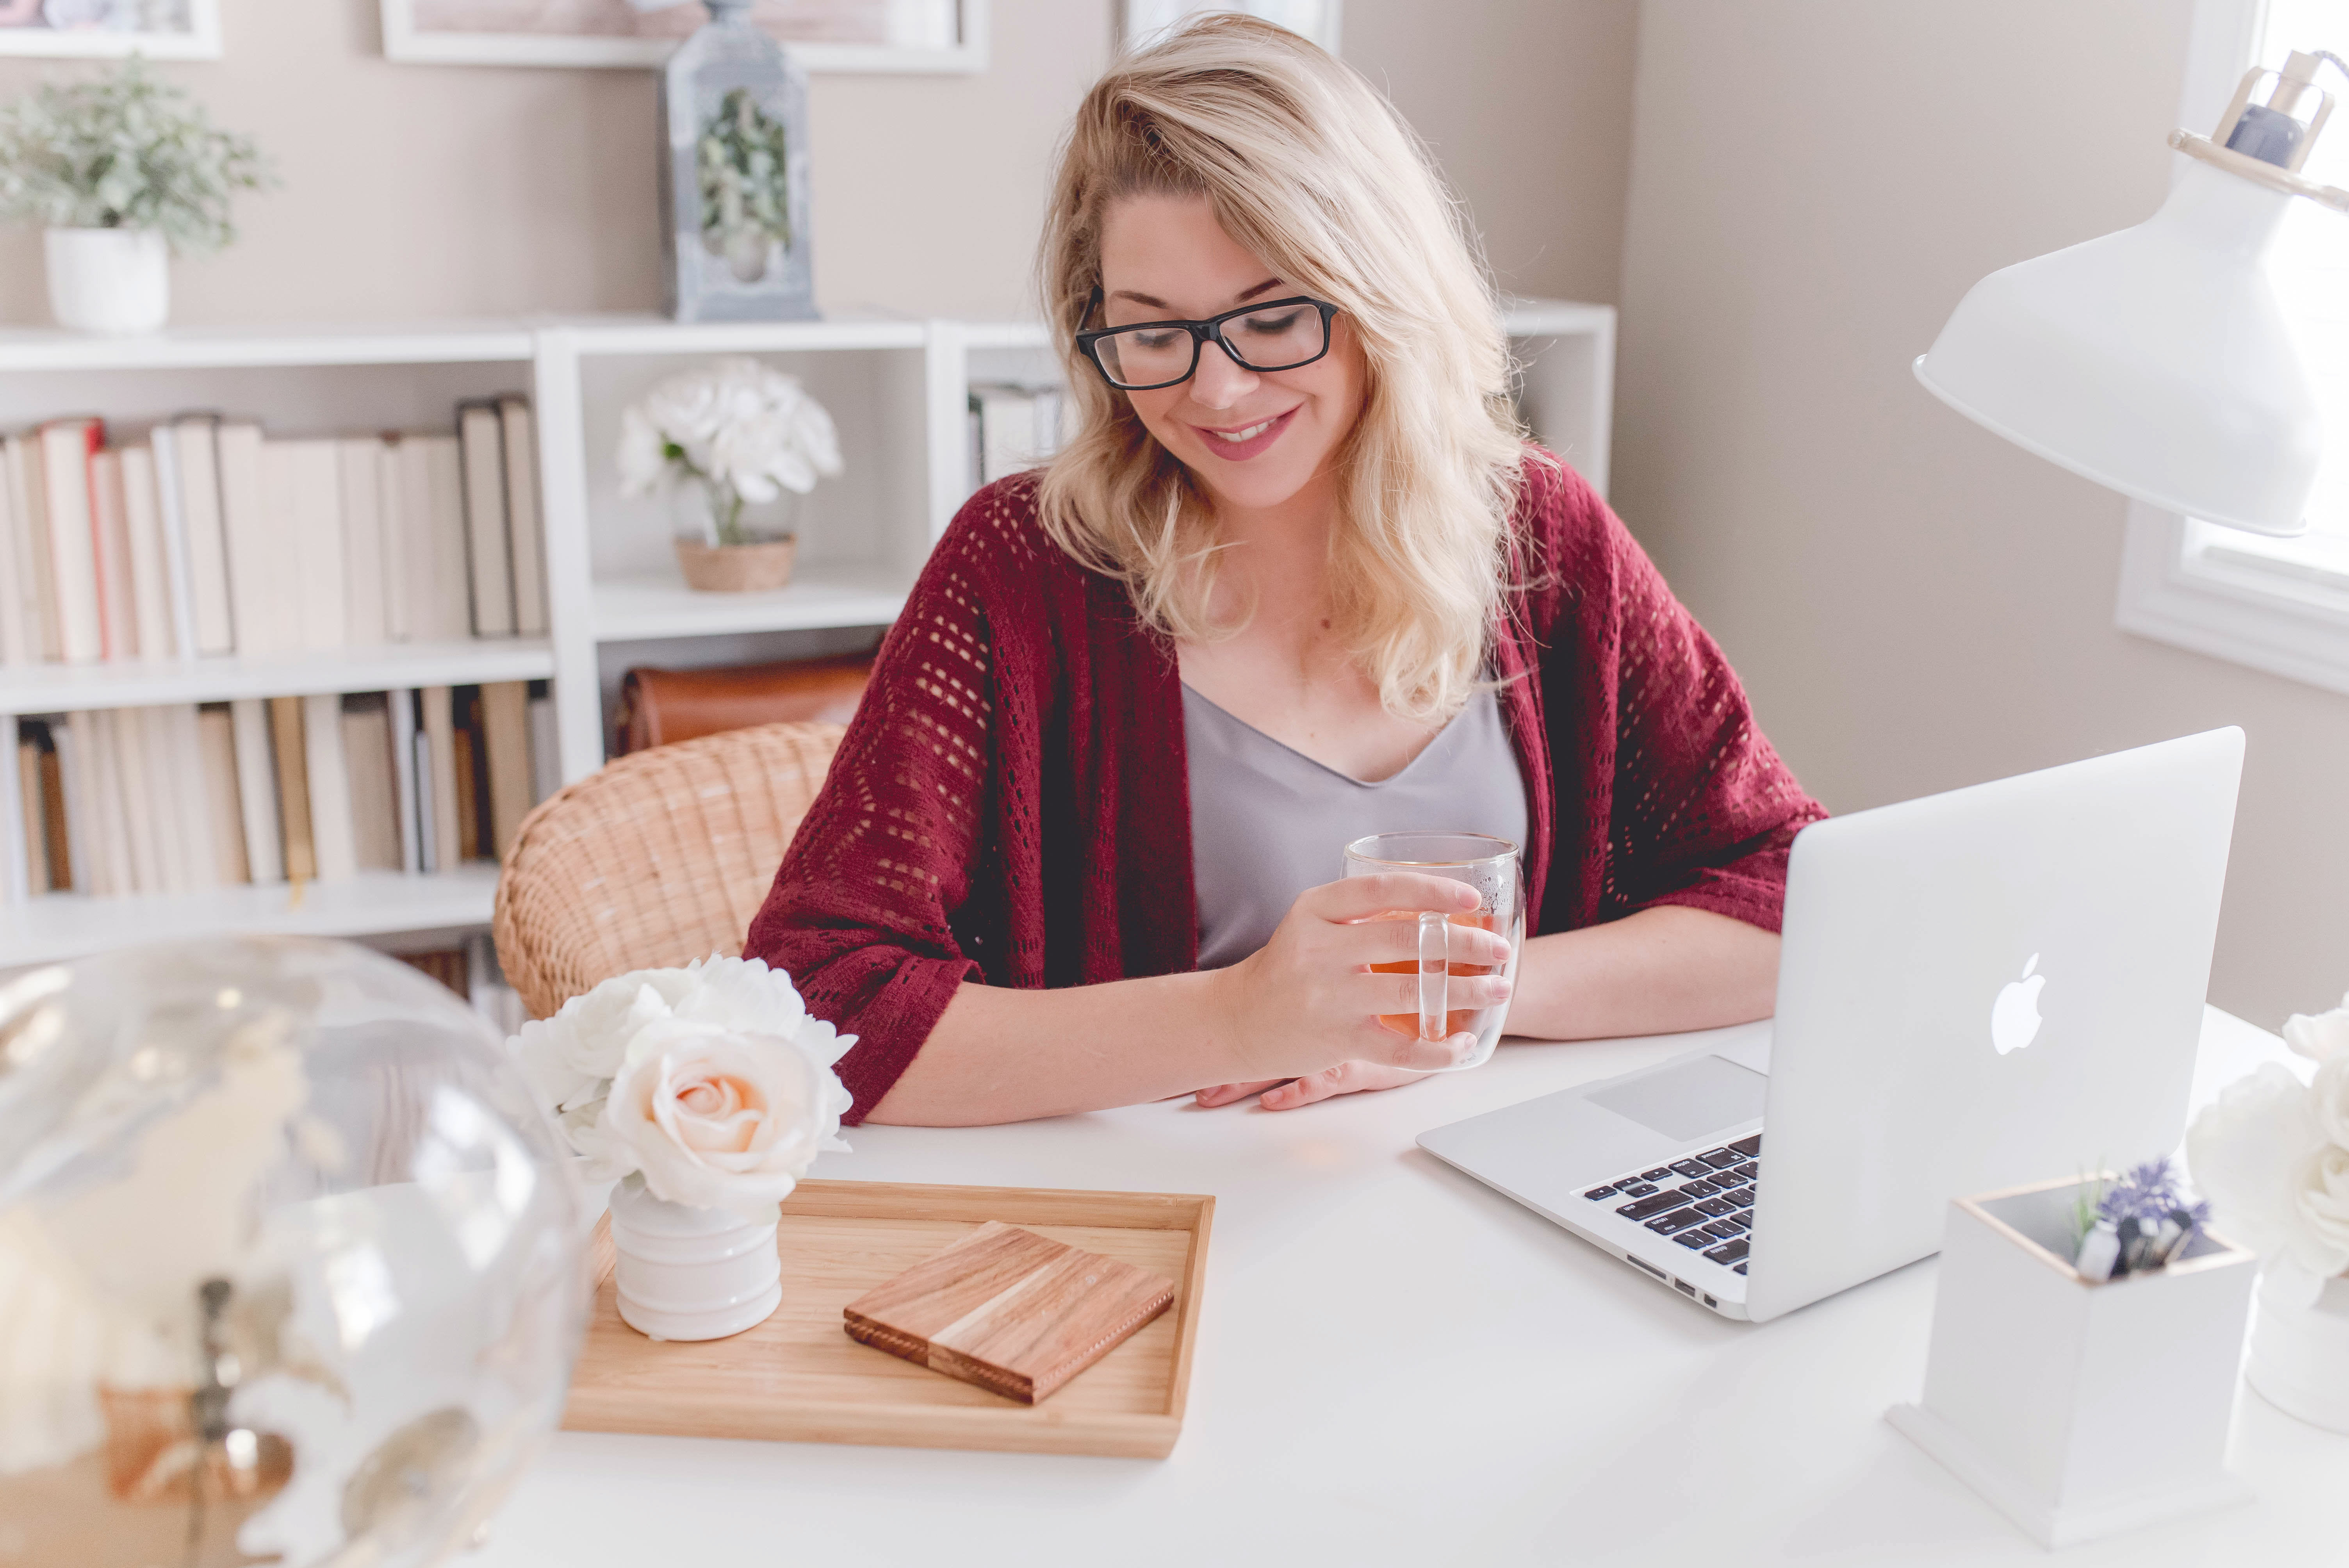 A woman smiling at her home desk